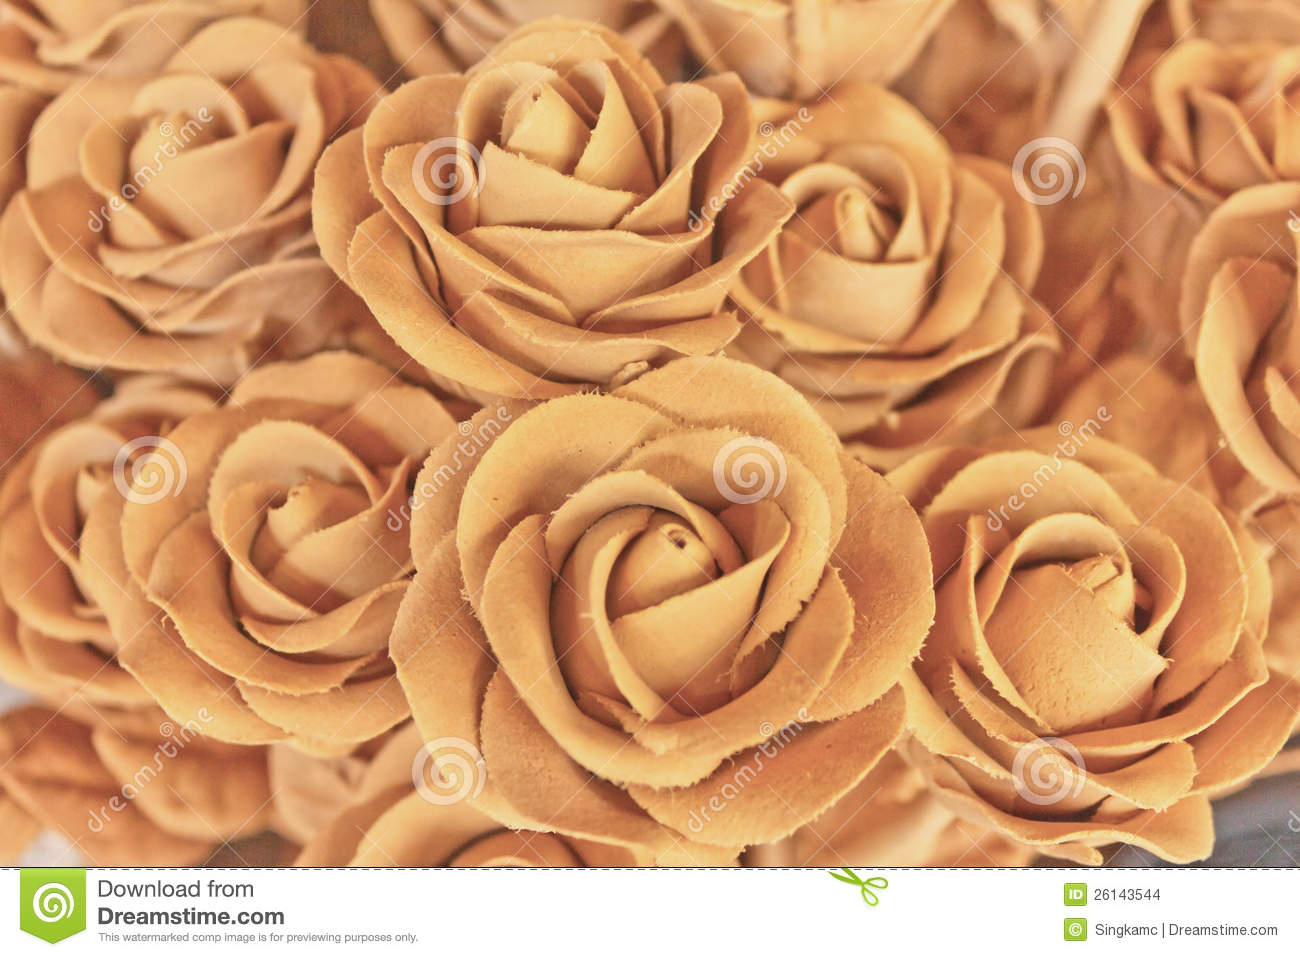 Ornate Wood Carving Patterns Stock Images - Image: 26143544